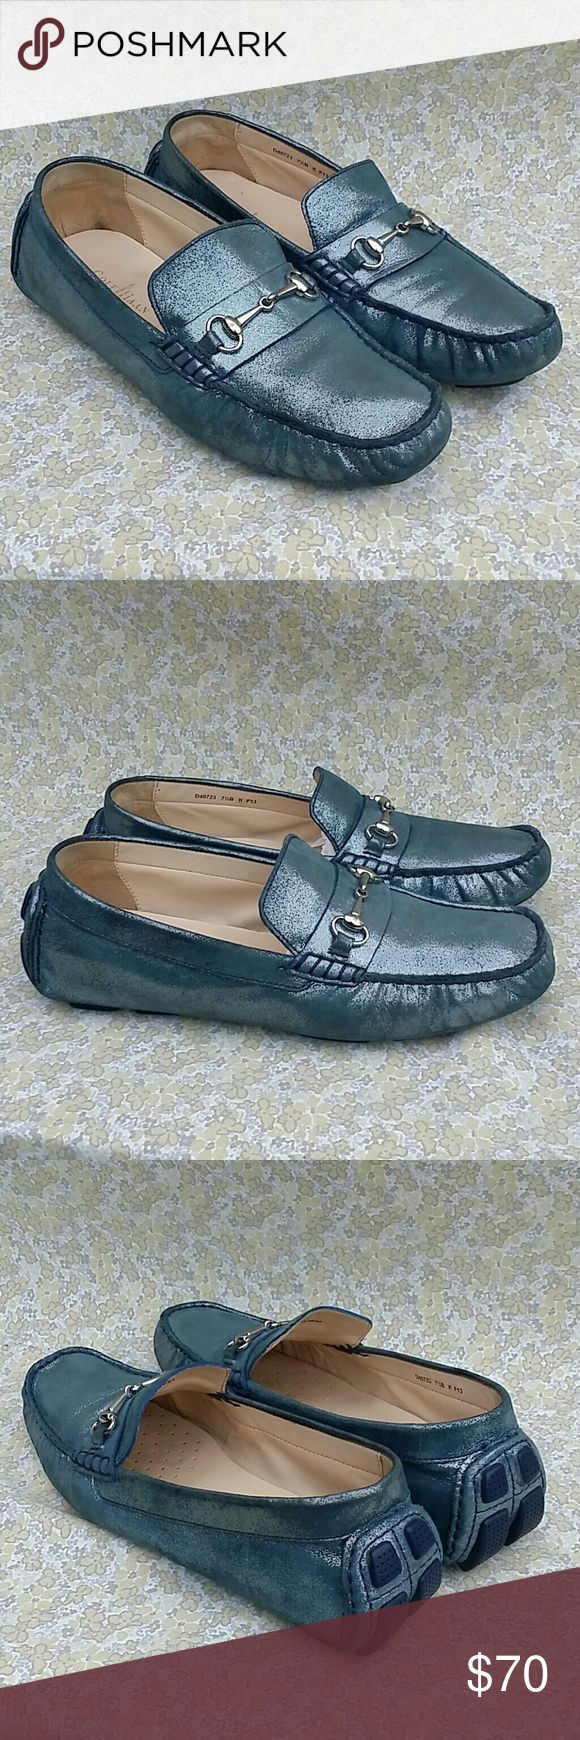 Cole Haan Glittery Driver Loafers Size 7.5 Cole Haan Glittery Driver Loafers Size 7.5 Light Ware Cole Haan Shoes Flats & Loafers